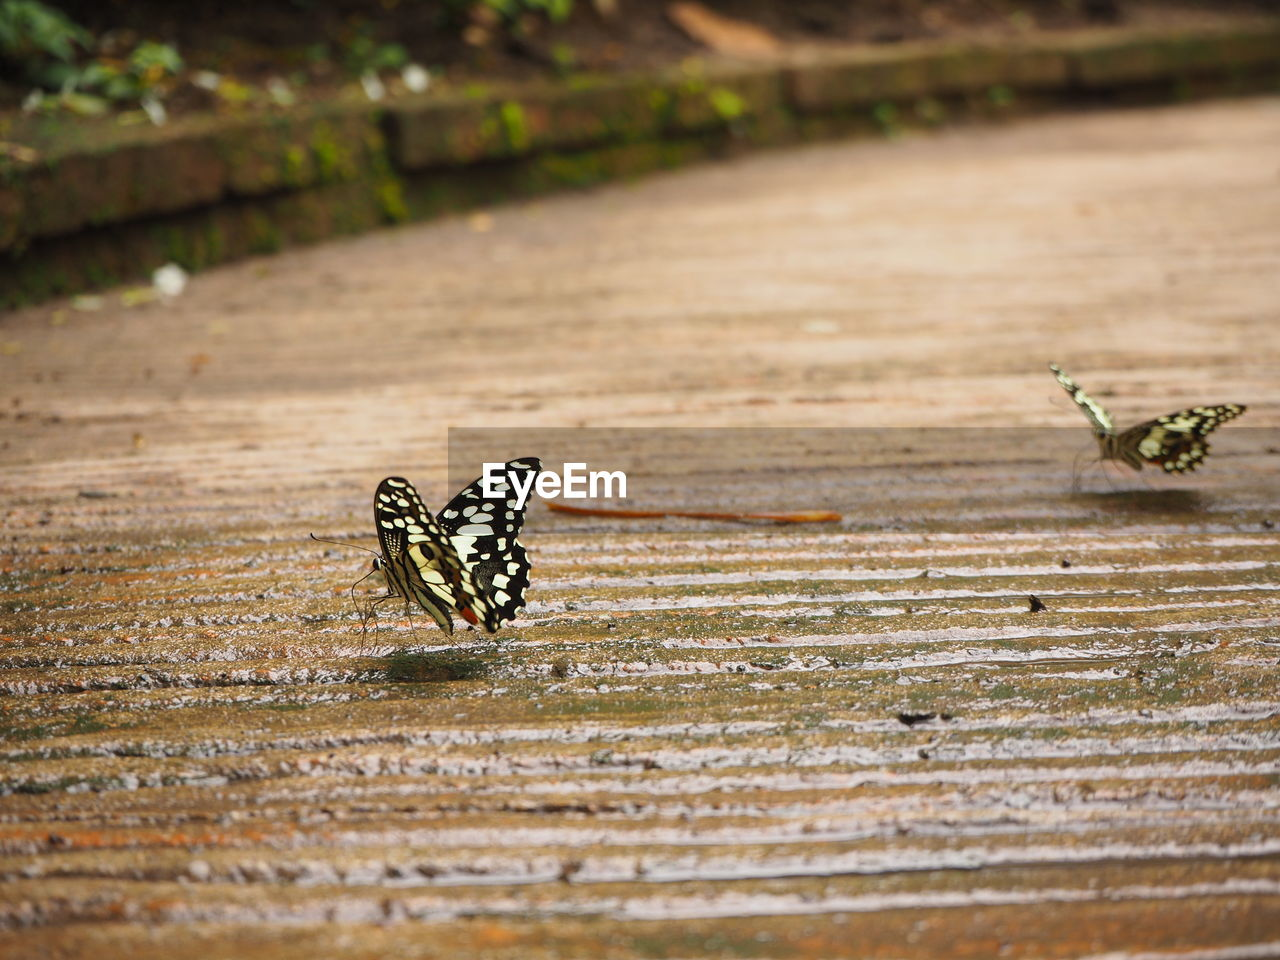 animal themes, animal, animal wildlife, animals in the wild, invertebrate, group of animals, insect, no people, selective focus, day, two animals, focus on foreground, nature, close-up, beauty in nature, outdoors, wood - material, animal wing, vertebrate, butterfly - insect, surface level